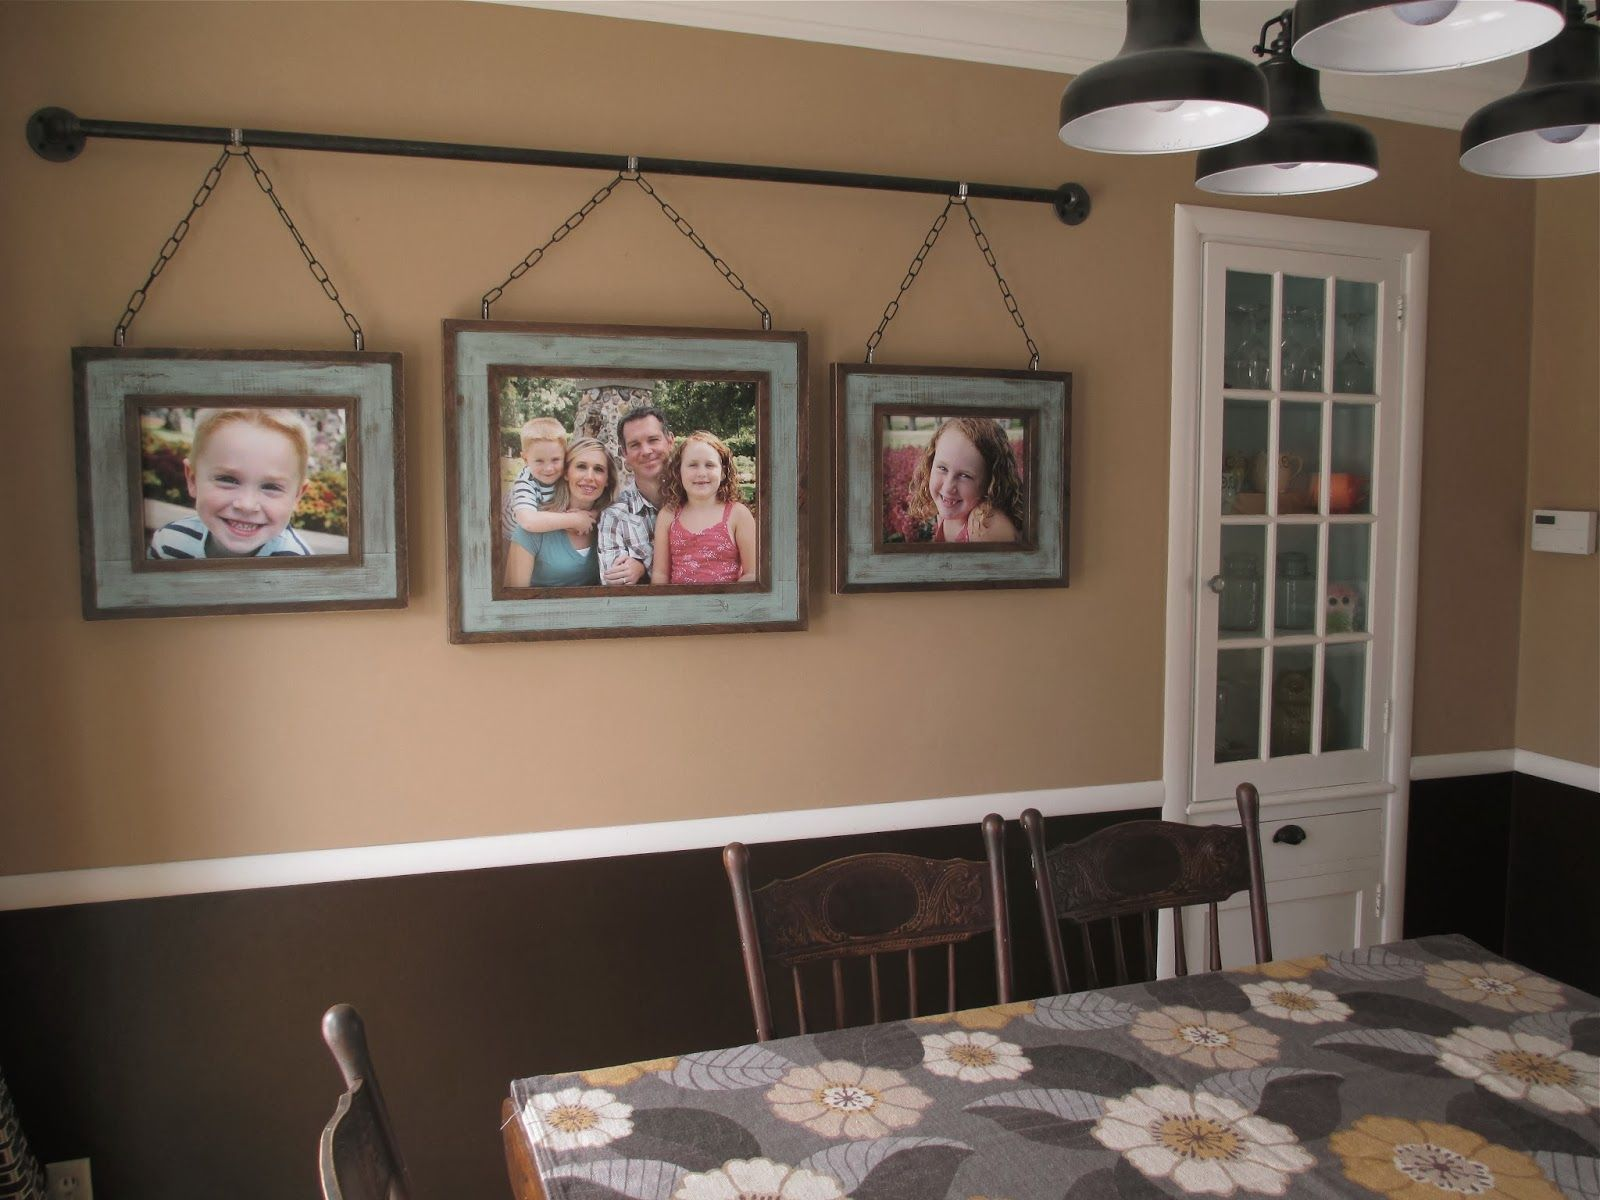 KRUSE'S WORKSHOP: Iron Pipe Family Photo Display